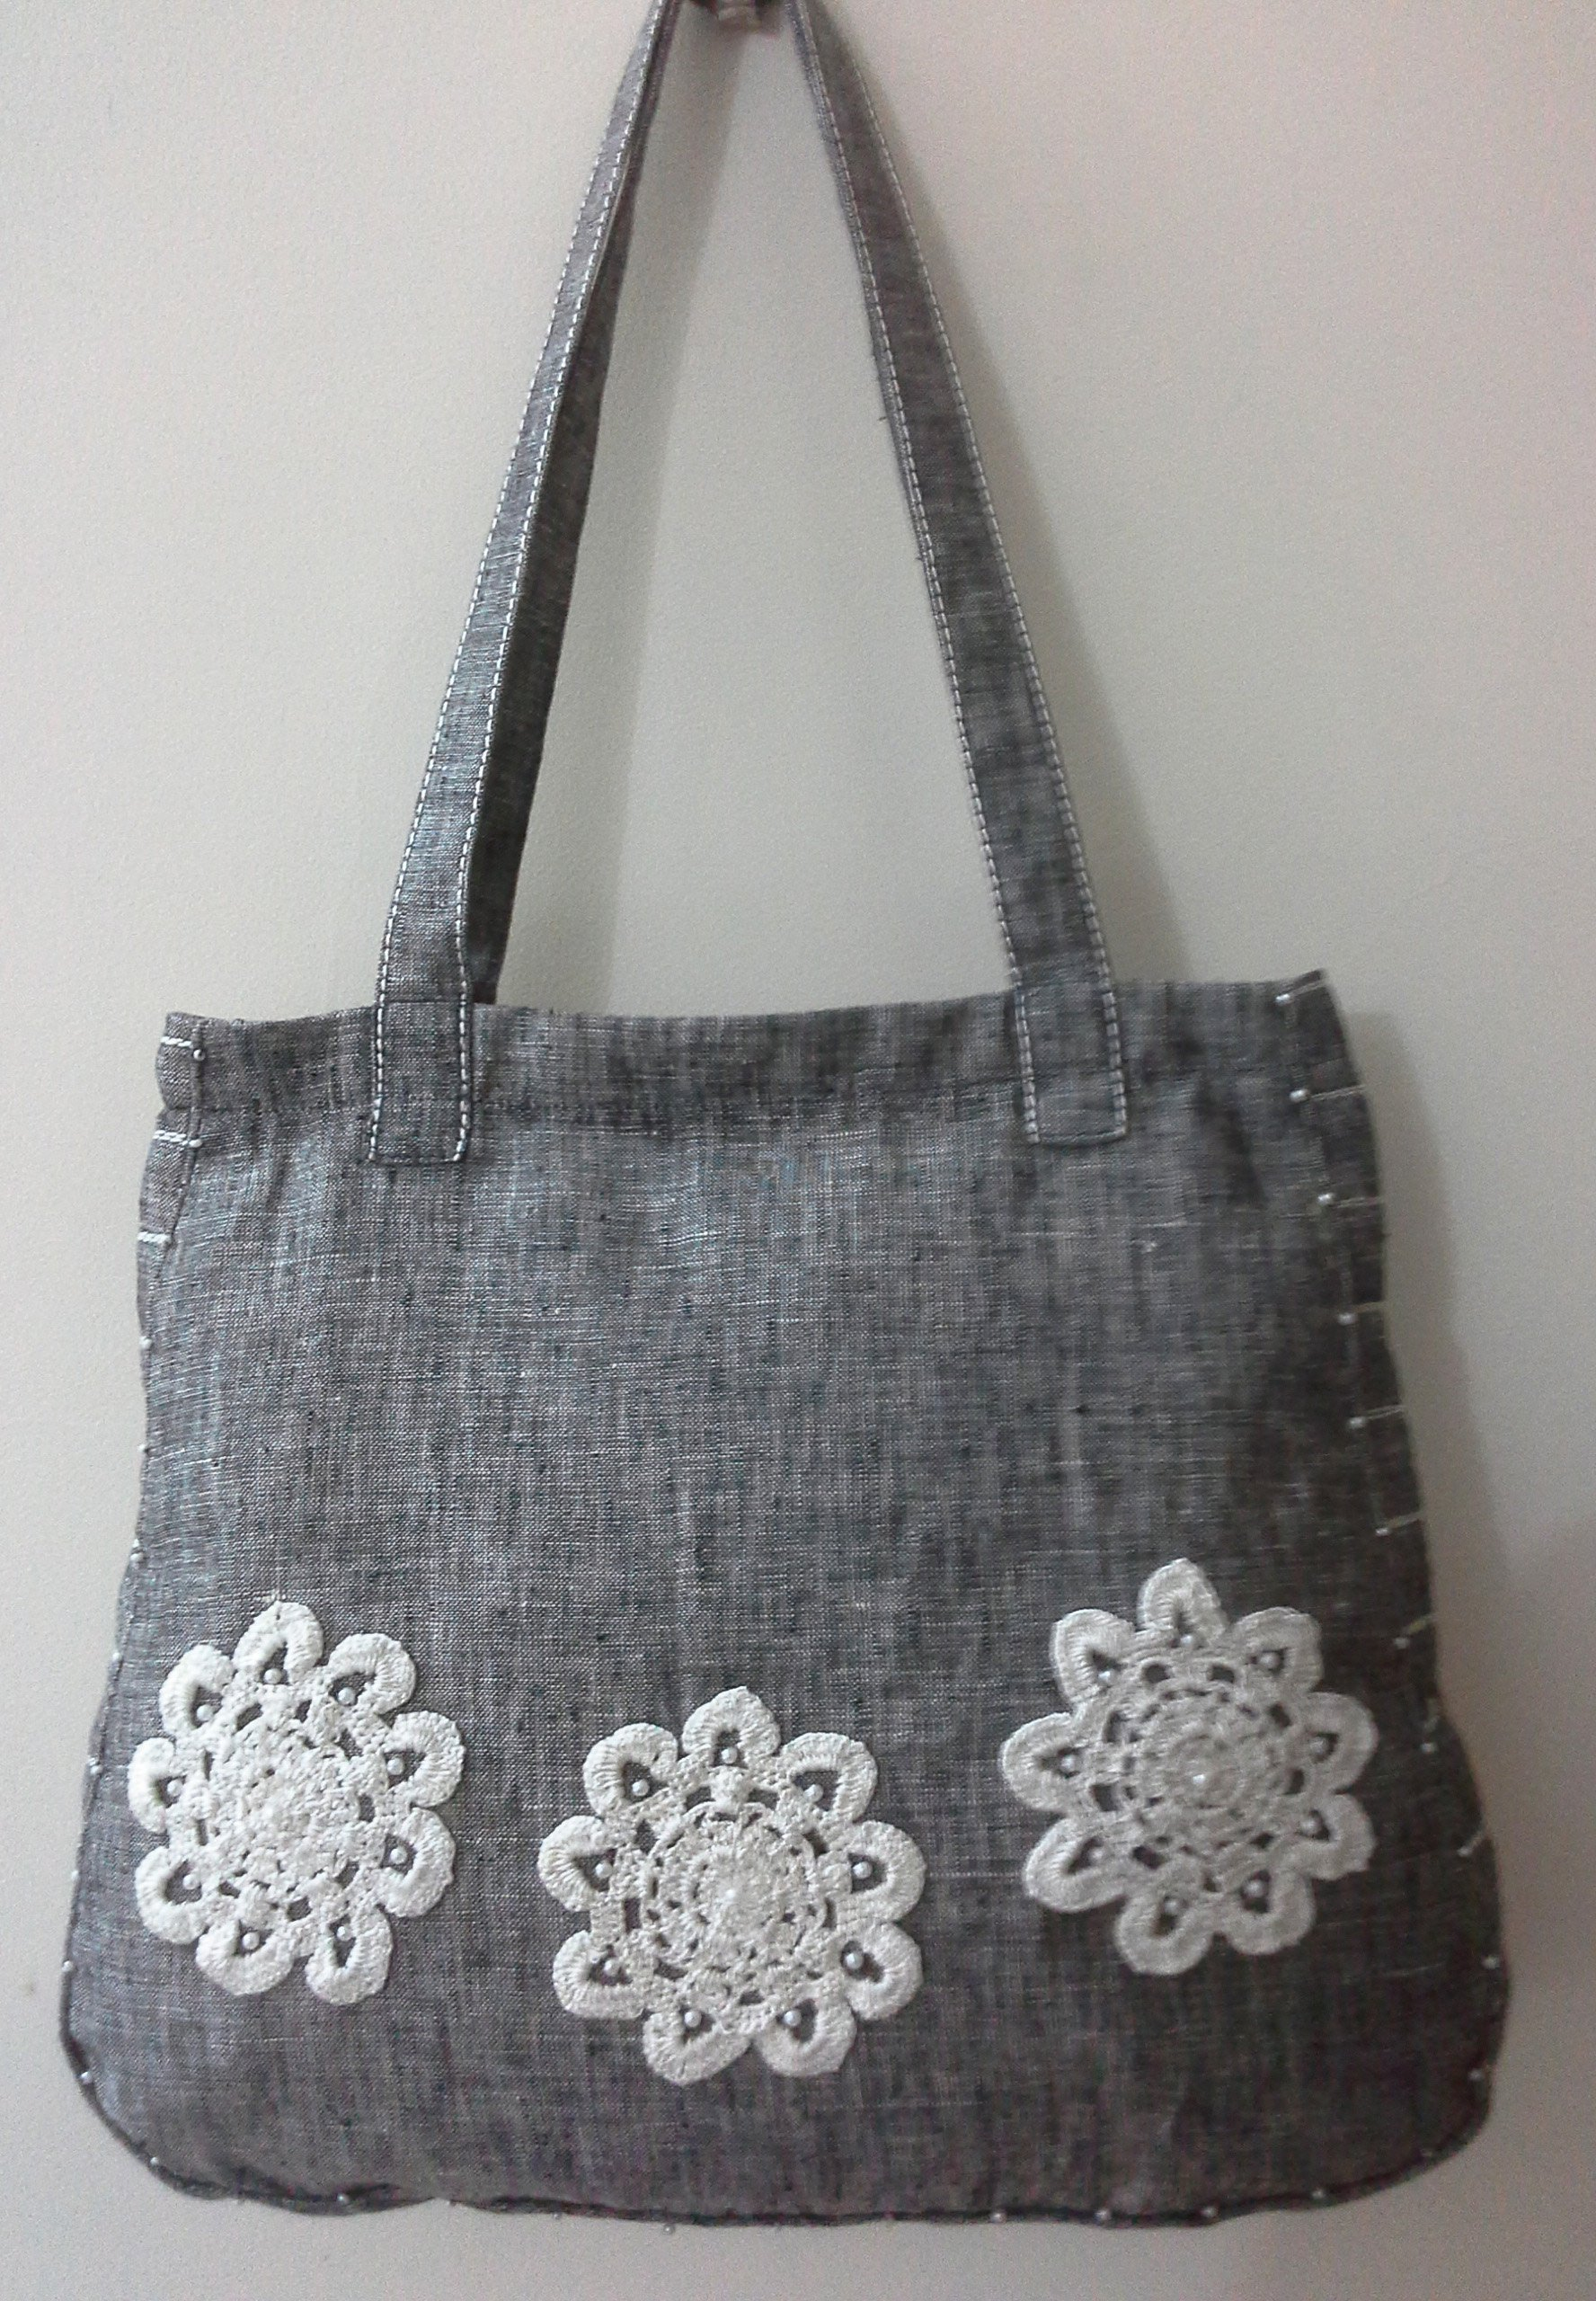 Panigha India Handmade Linen Tote Bag in Textured Charcoal Grey color with handmade crochet flowers. - handmade-bags